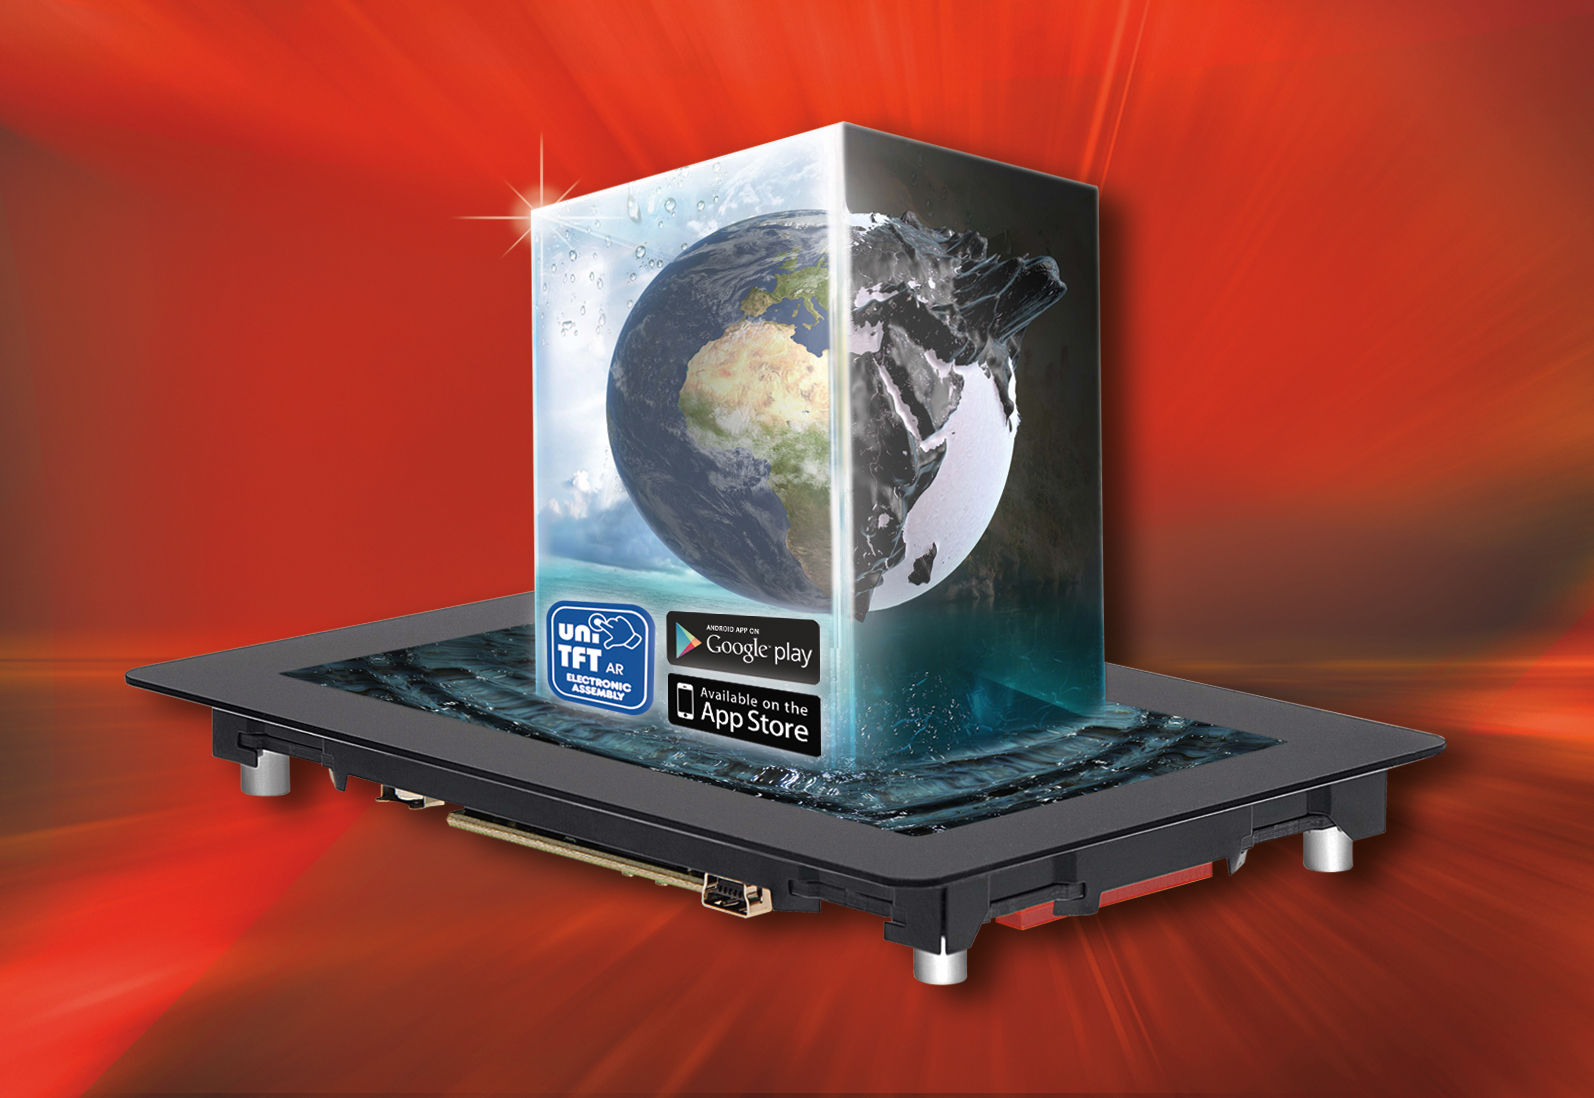 Electronic Assembly Companies : Electronic assembly gmbh news from es